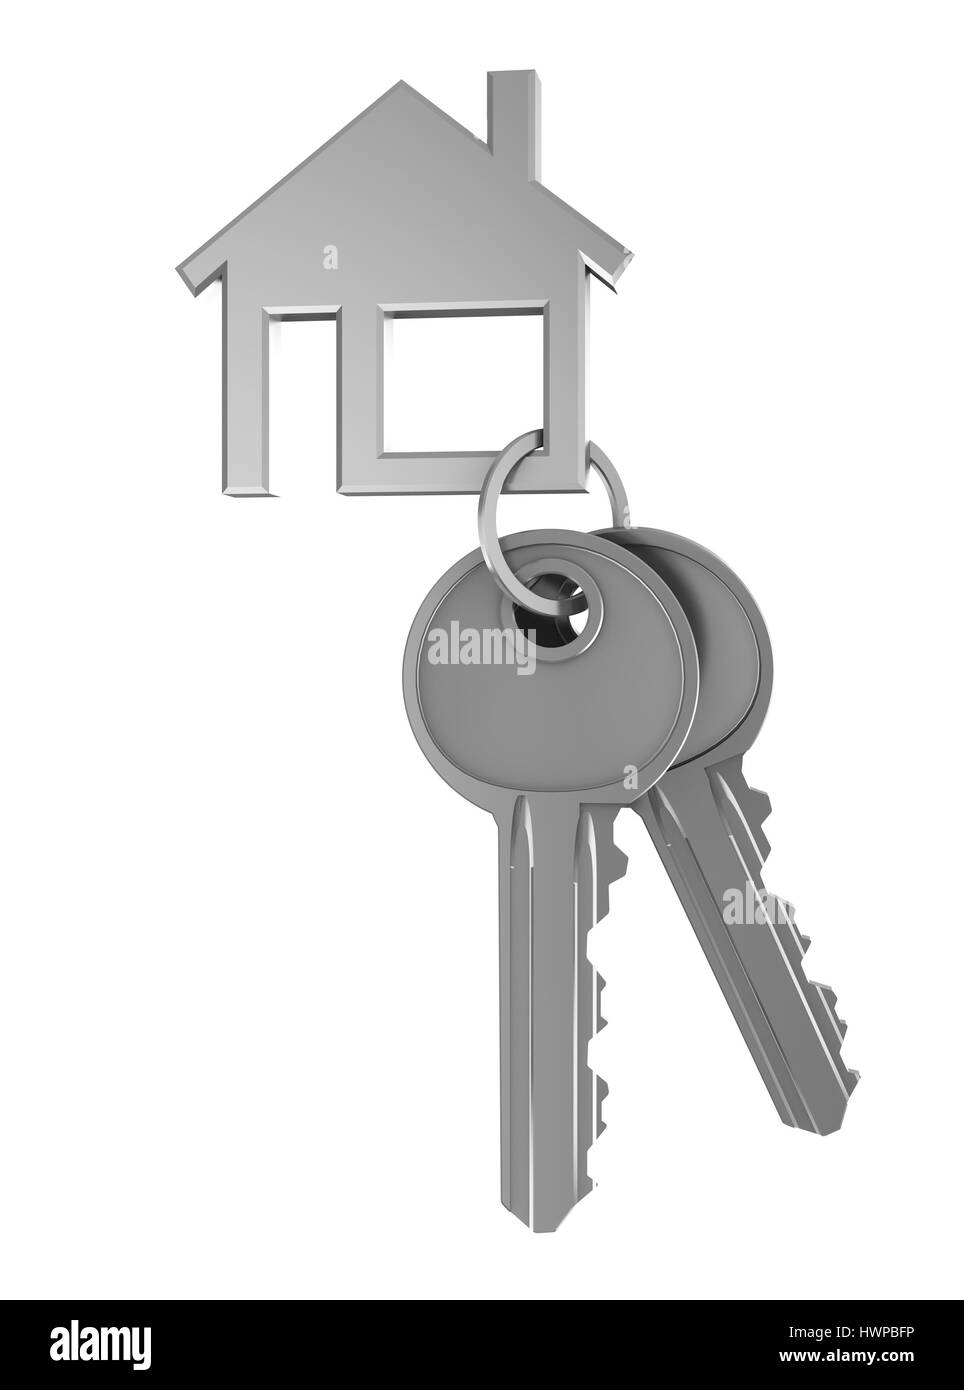 3d illustration of two keays and house shaped keyholder - Stock Image